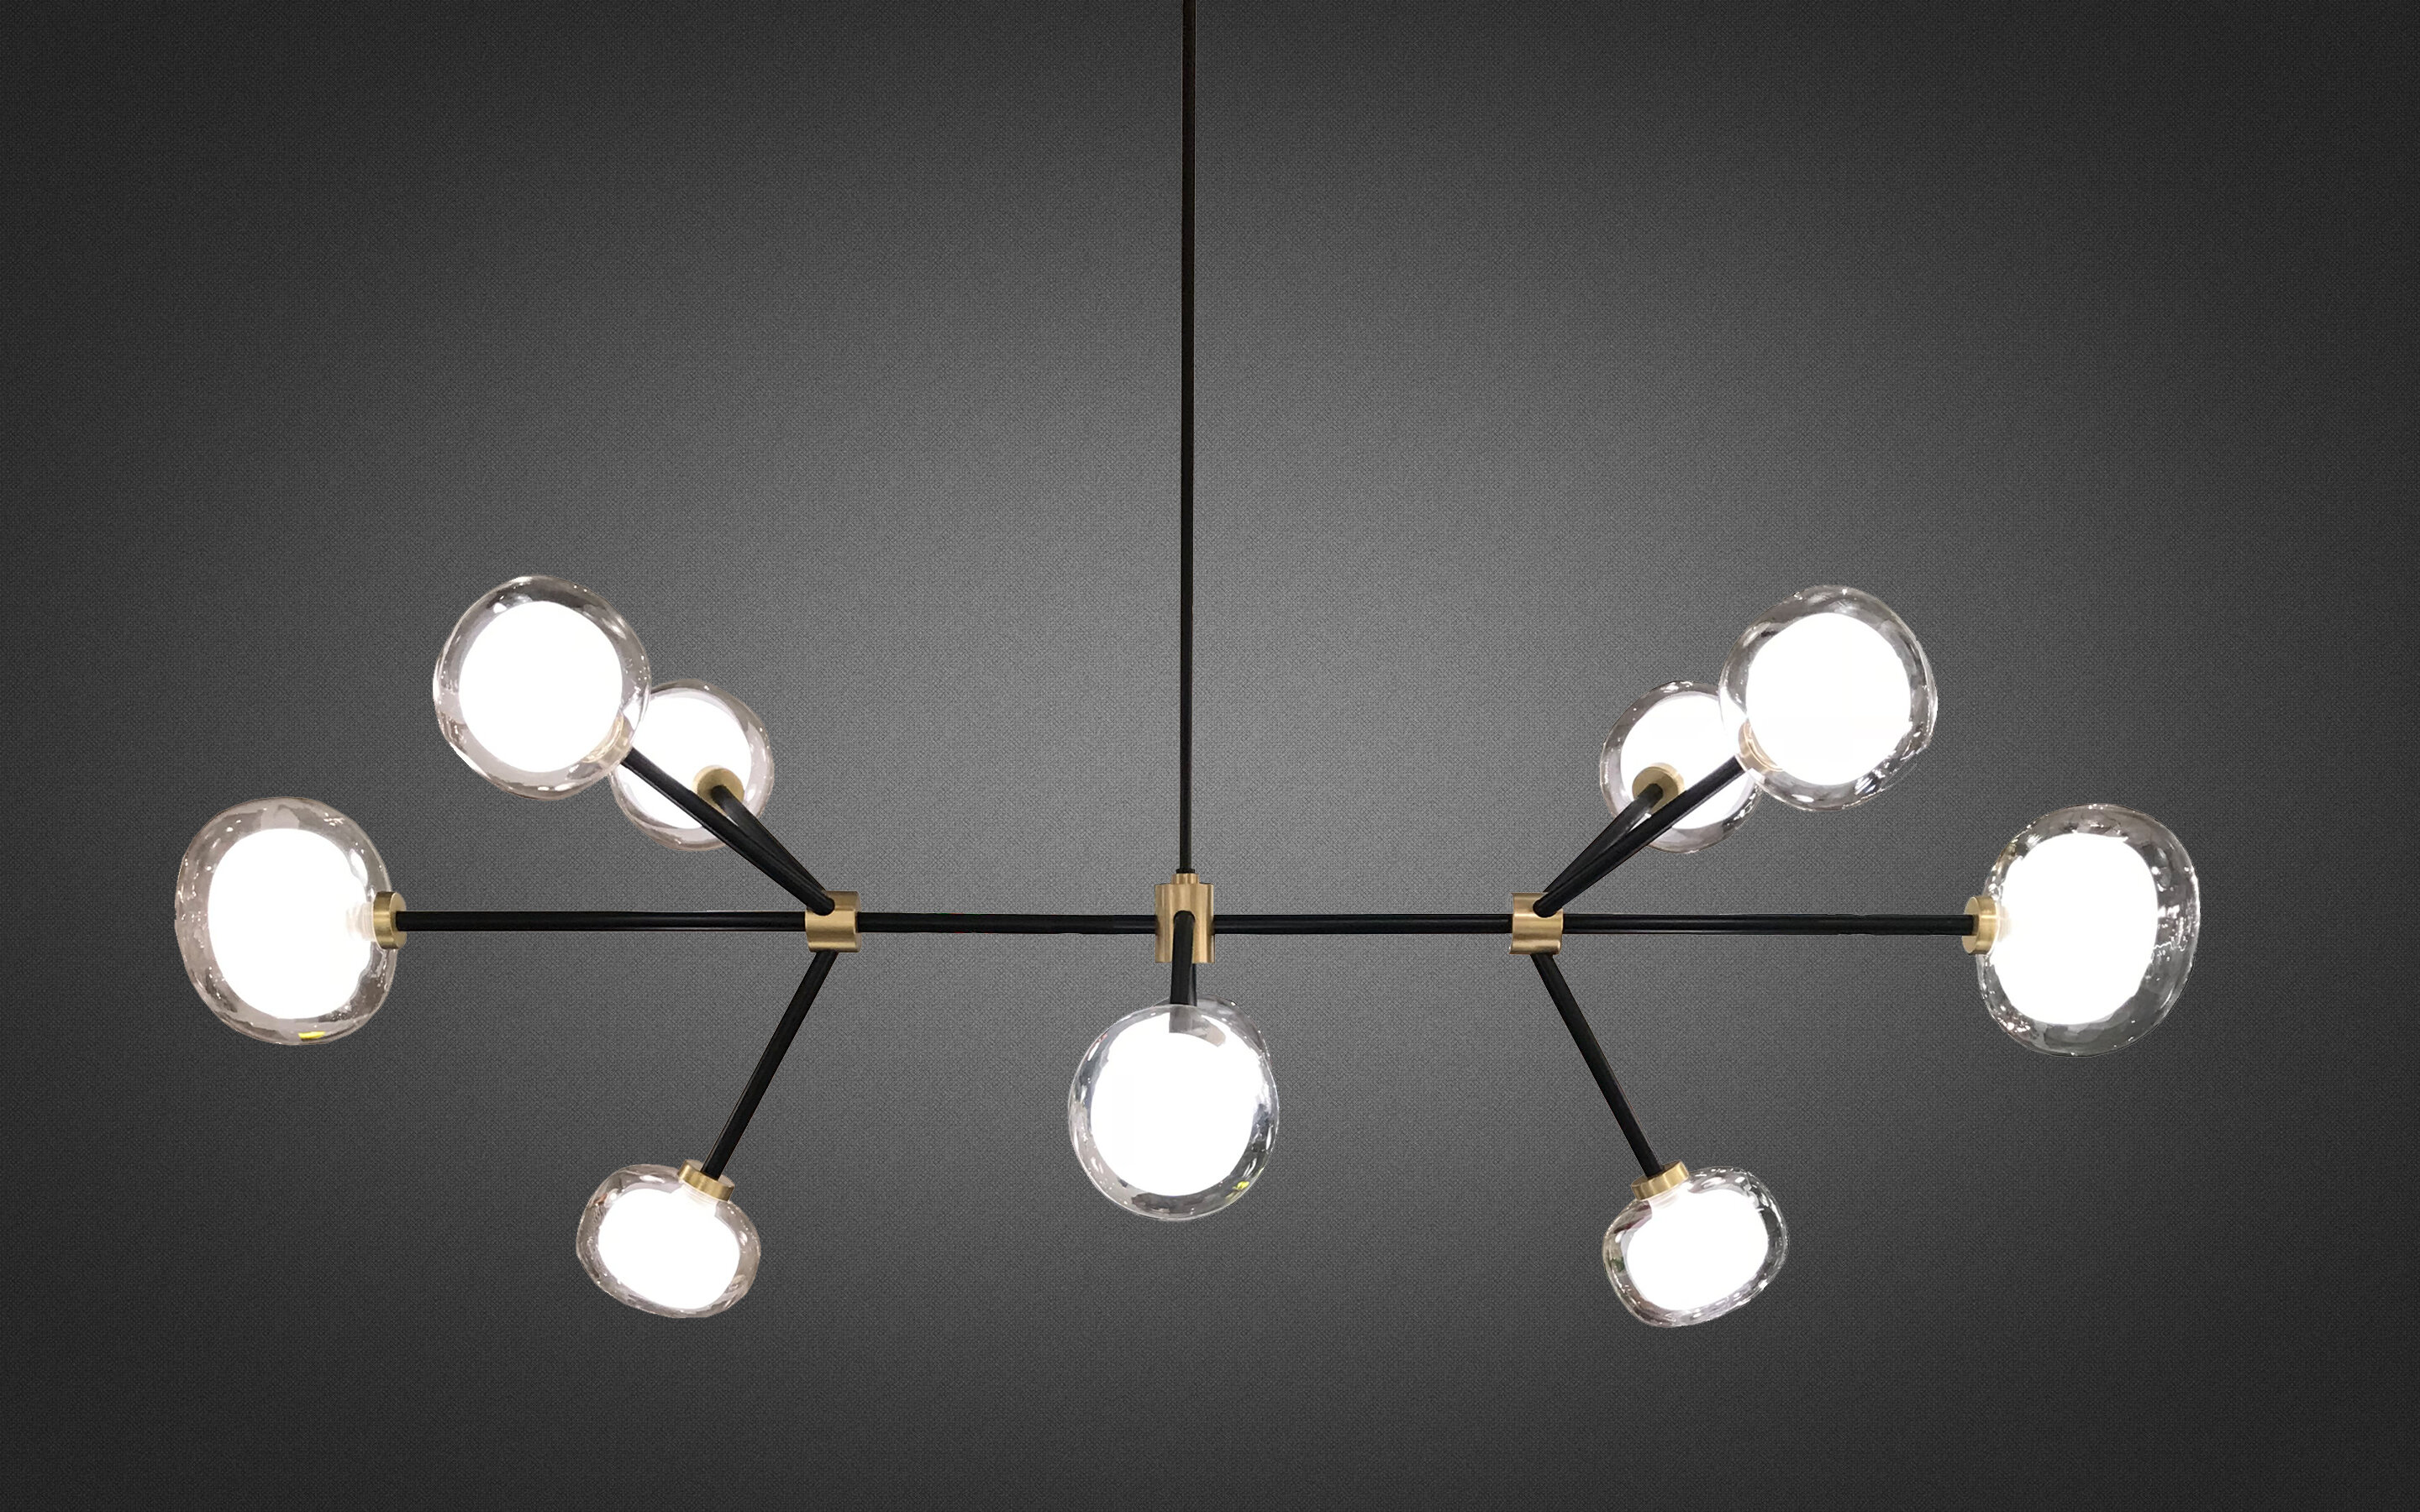 bulb round light pezzo il cl chand mancante by gld index chandelier